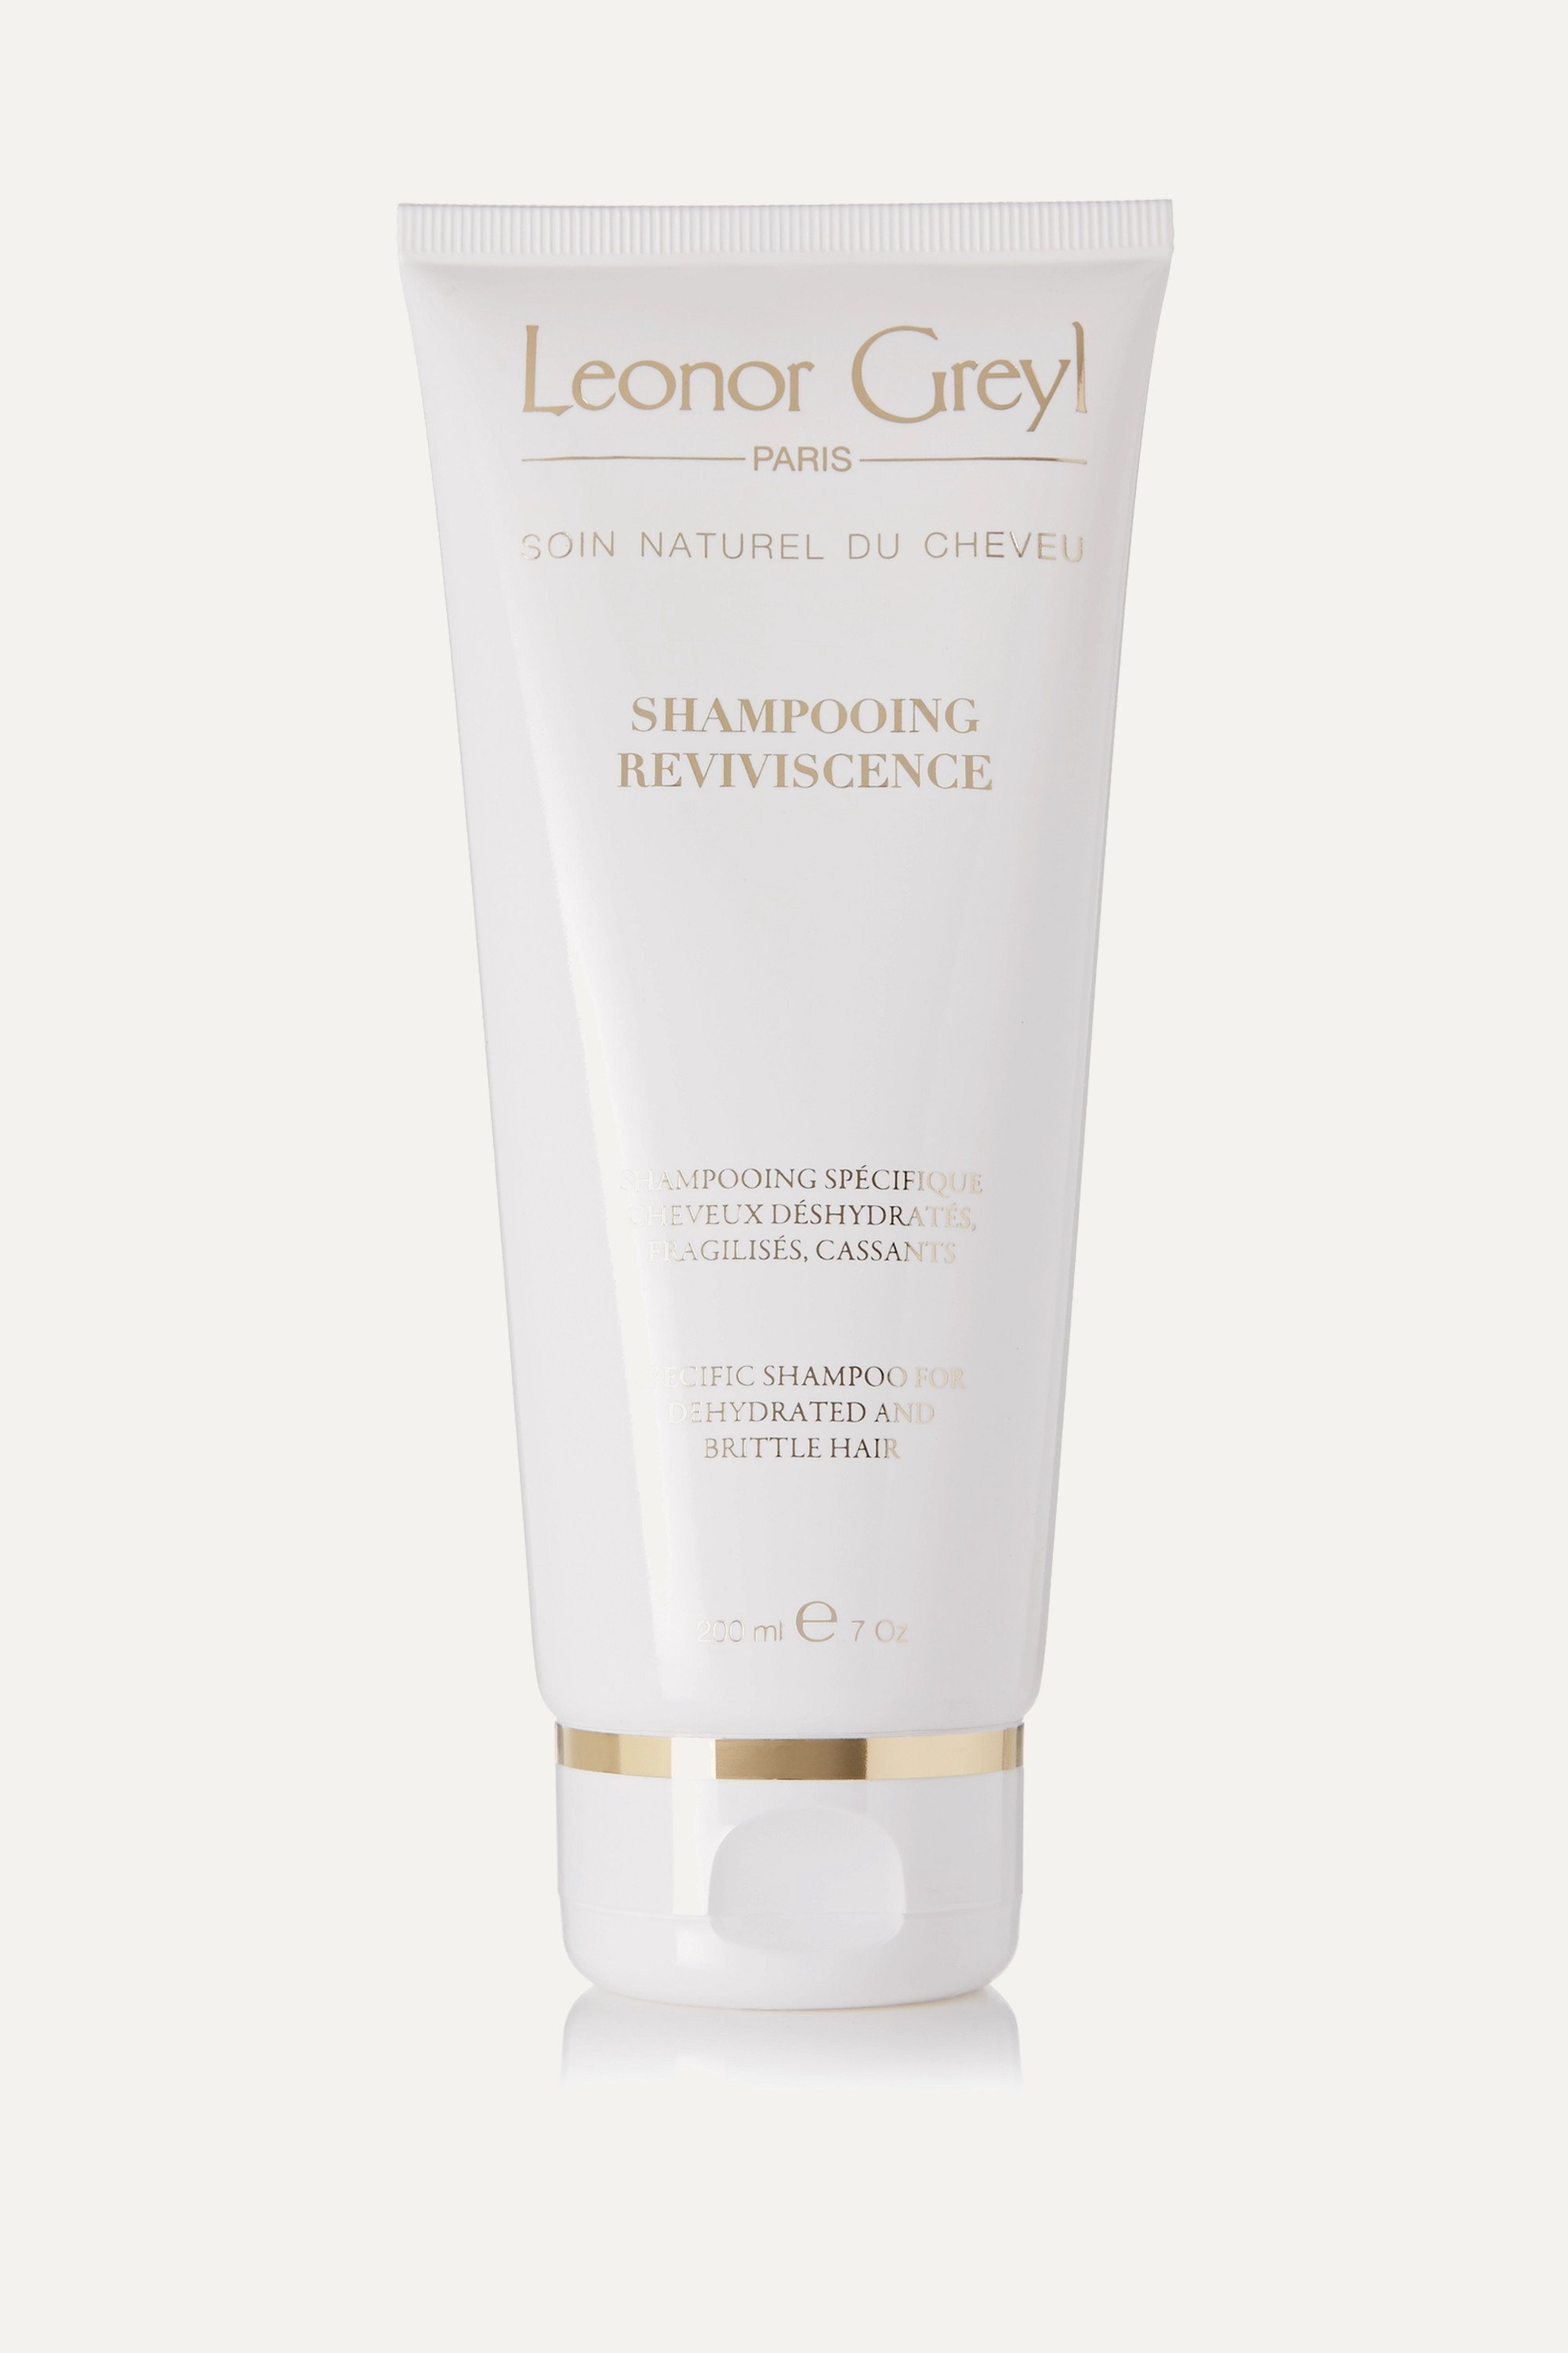 Leonor Greyl Paris Shampooing Reviviscence, 200ml – Shampoo